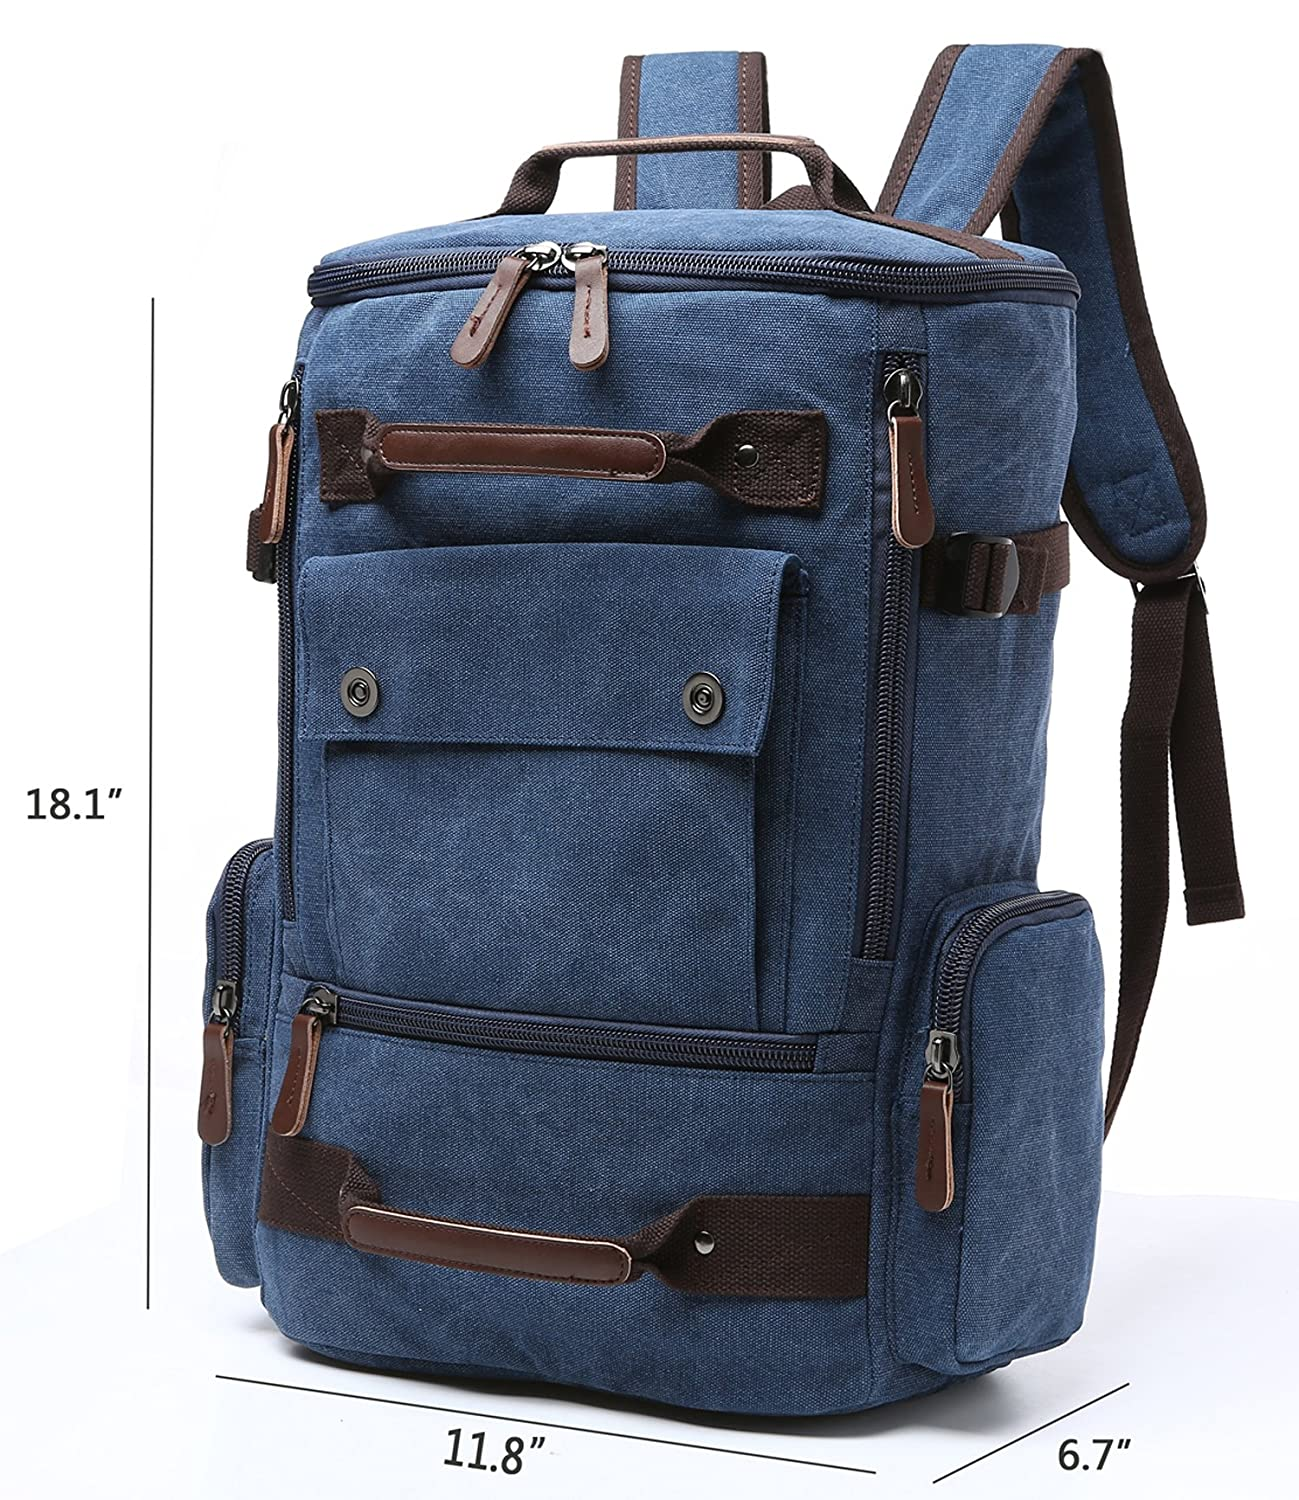 bf11f69ef Amazon.com: Canvas Backpack, Aidonger Vintage Canvas School Backpack Hiking  Travel Rucksack Fits 15'' Laptop (Dark Blue): Aidonger Direct